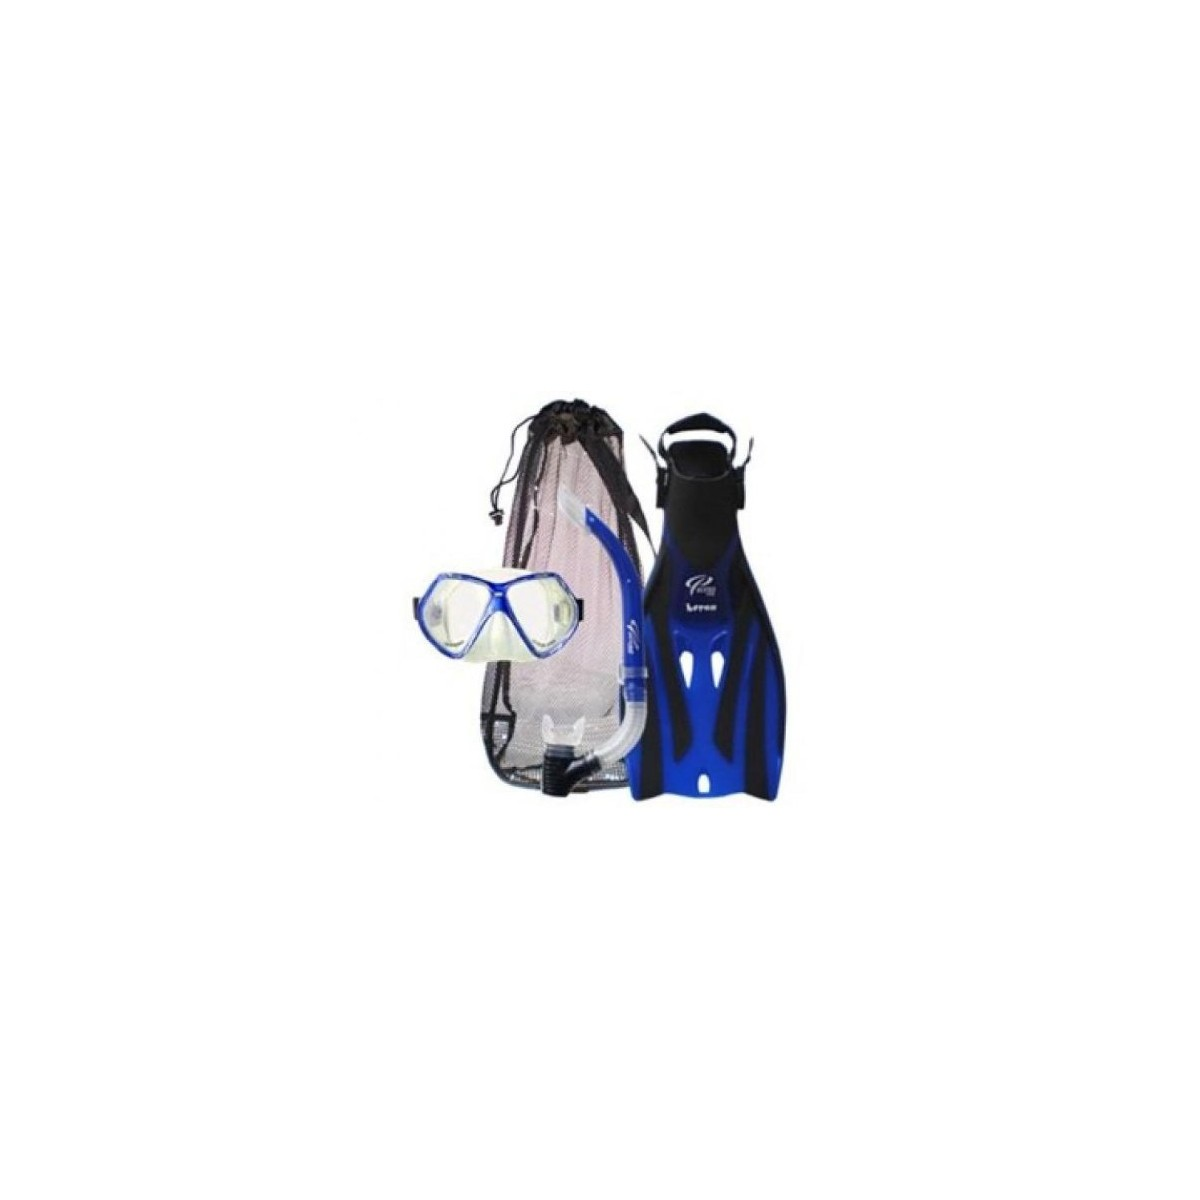 Ocean Pro Adult Bat Mask, Snorkel and Fin Set